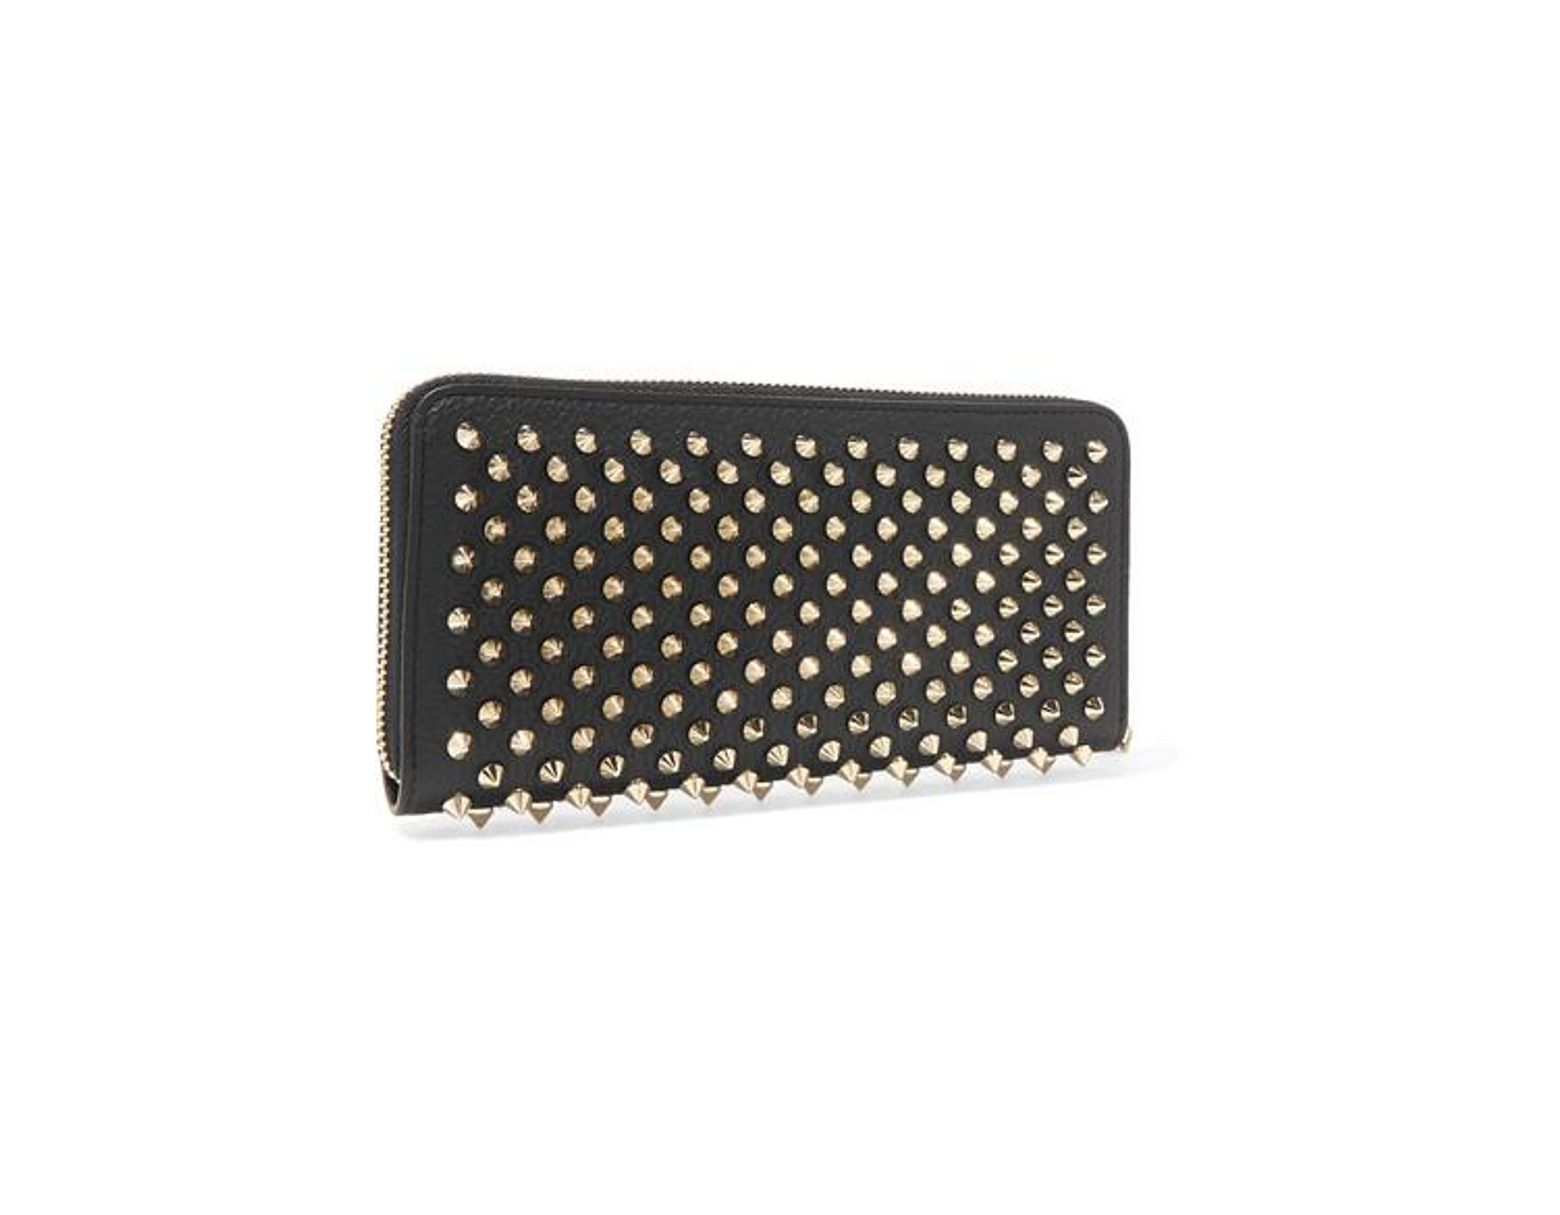 2785e95e006 Christian Louboutin Panettone Spiked Textured-leather Wallet in ...